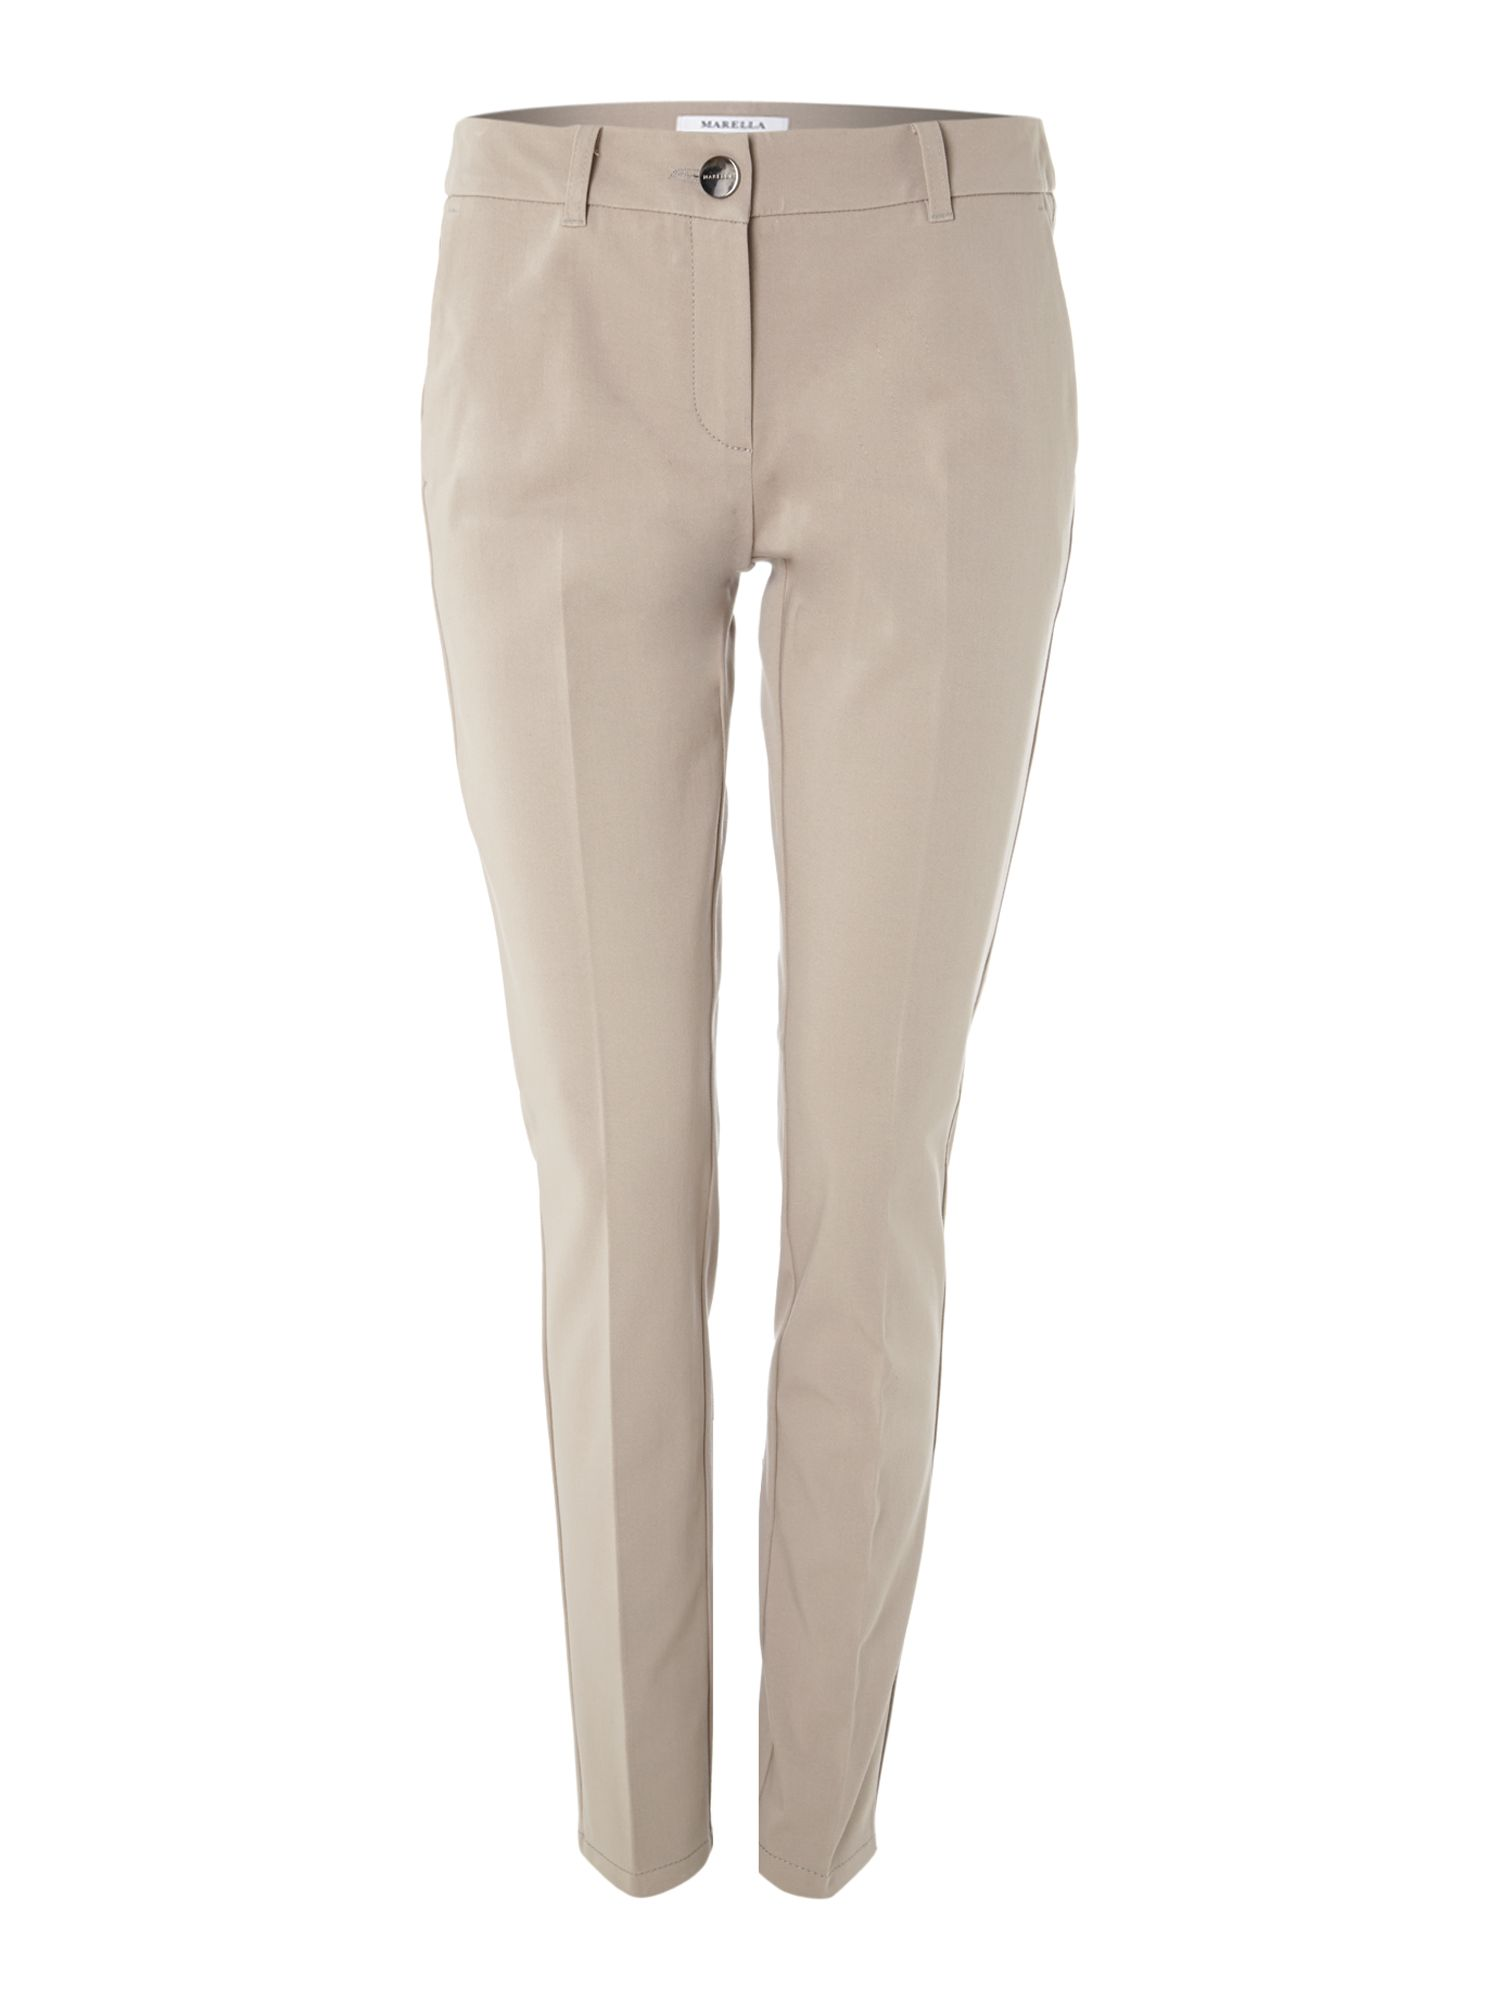 Dada pleated chino trouser